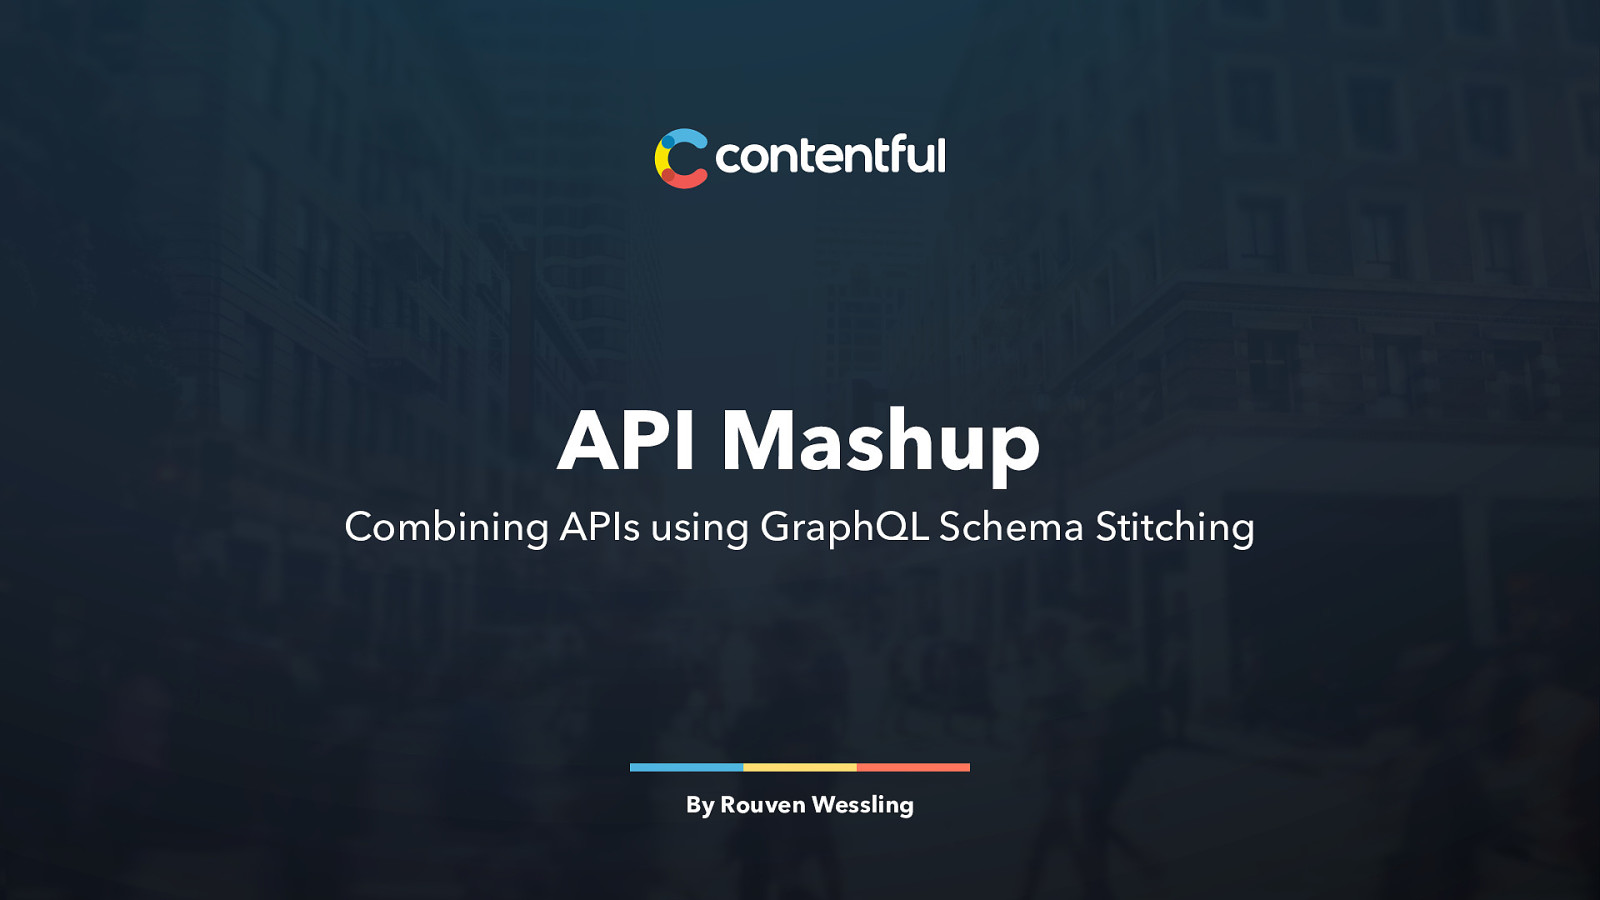 API Mashup: Combining APIs using GraphQL Schema Stitching